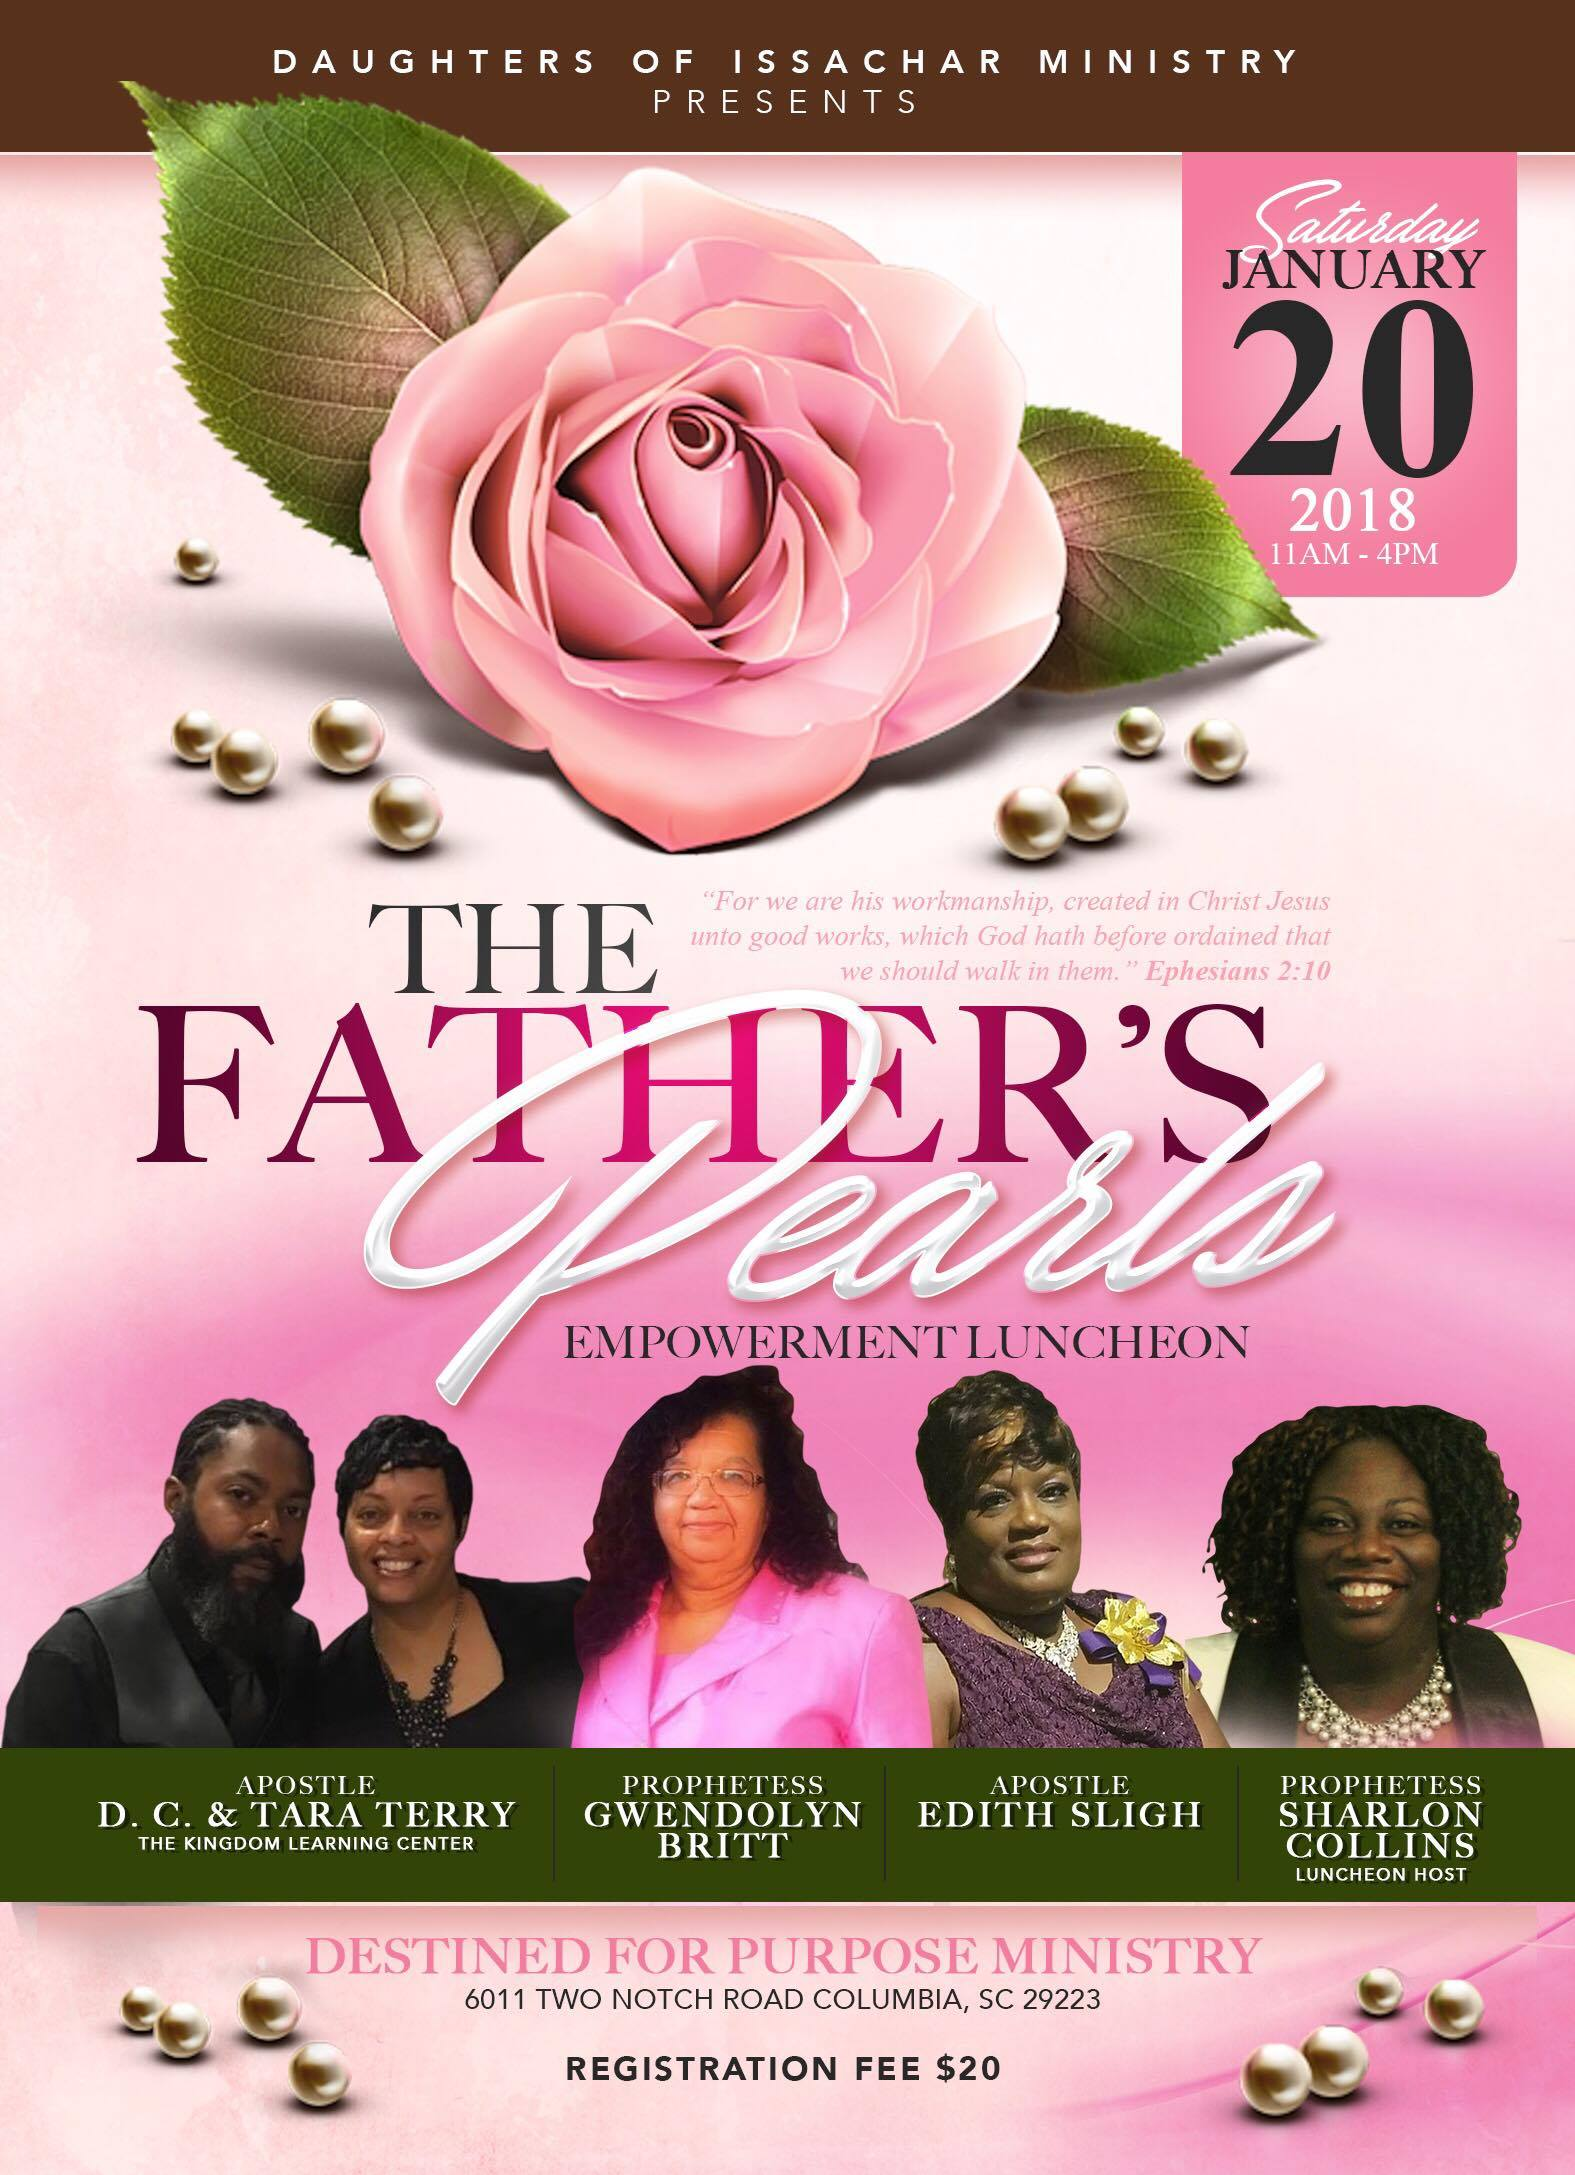 The Father's Pearls Empowerment Luncheon